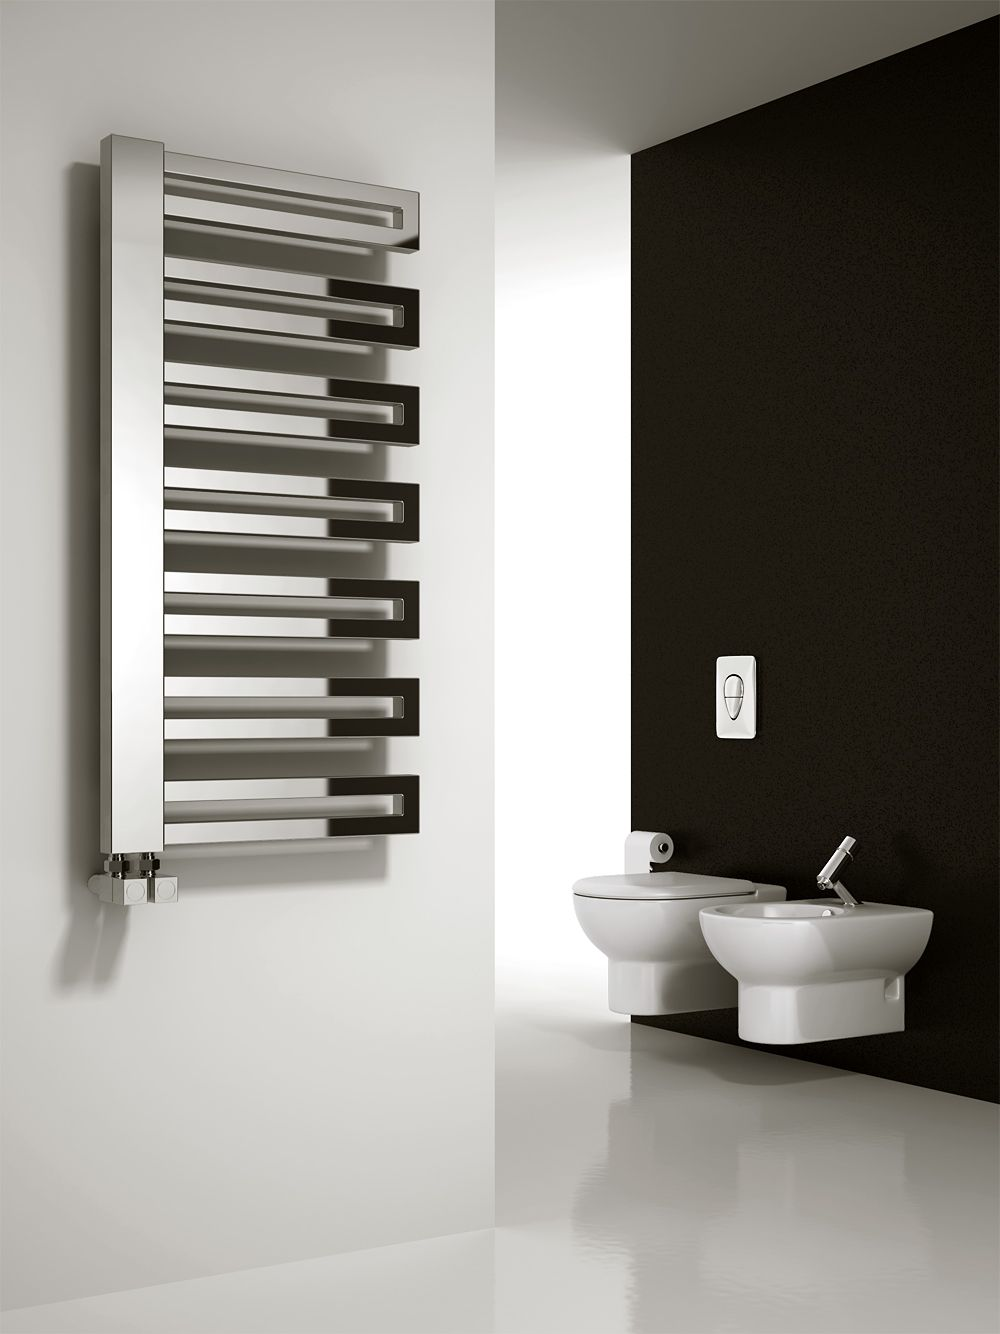 Reina Ginosa Towel Radiator Modern Towel Radiators Heated Towel